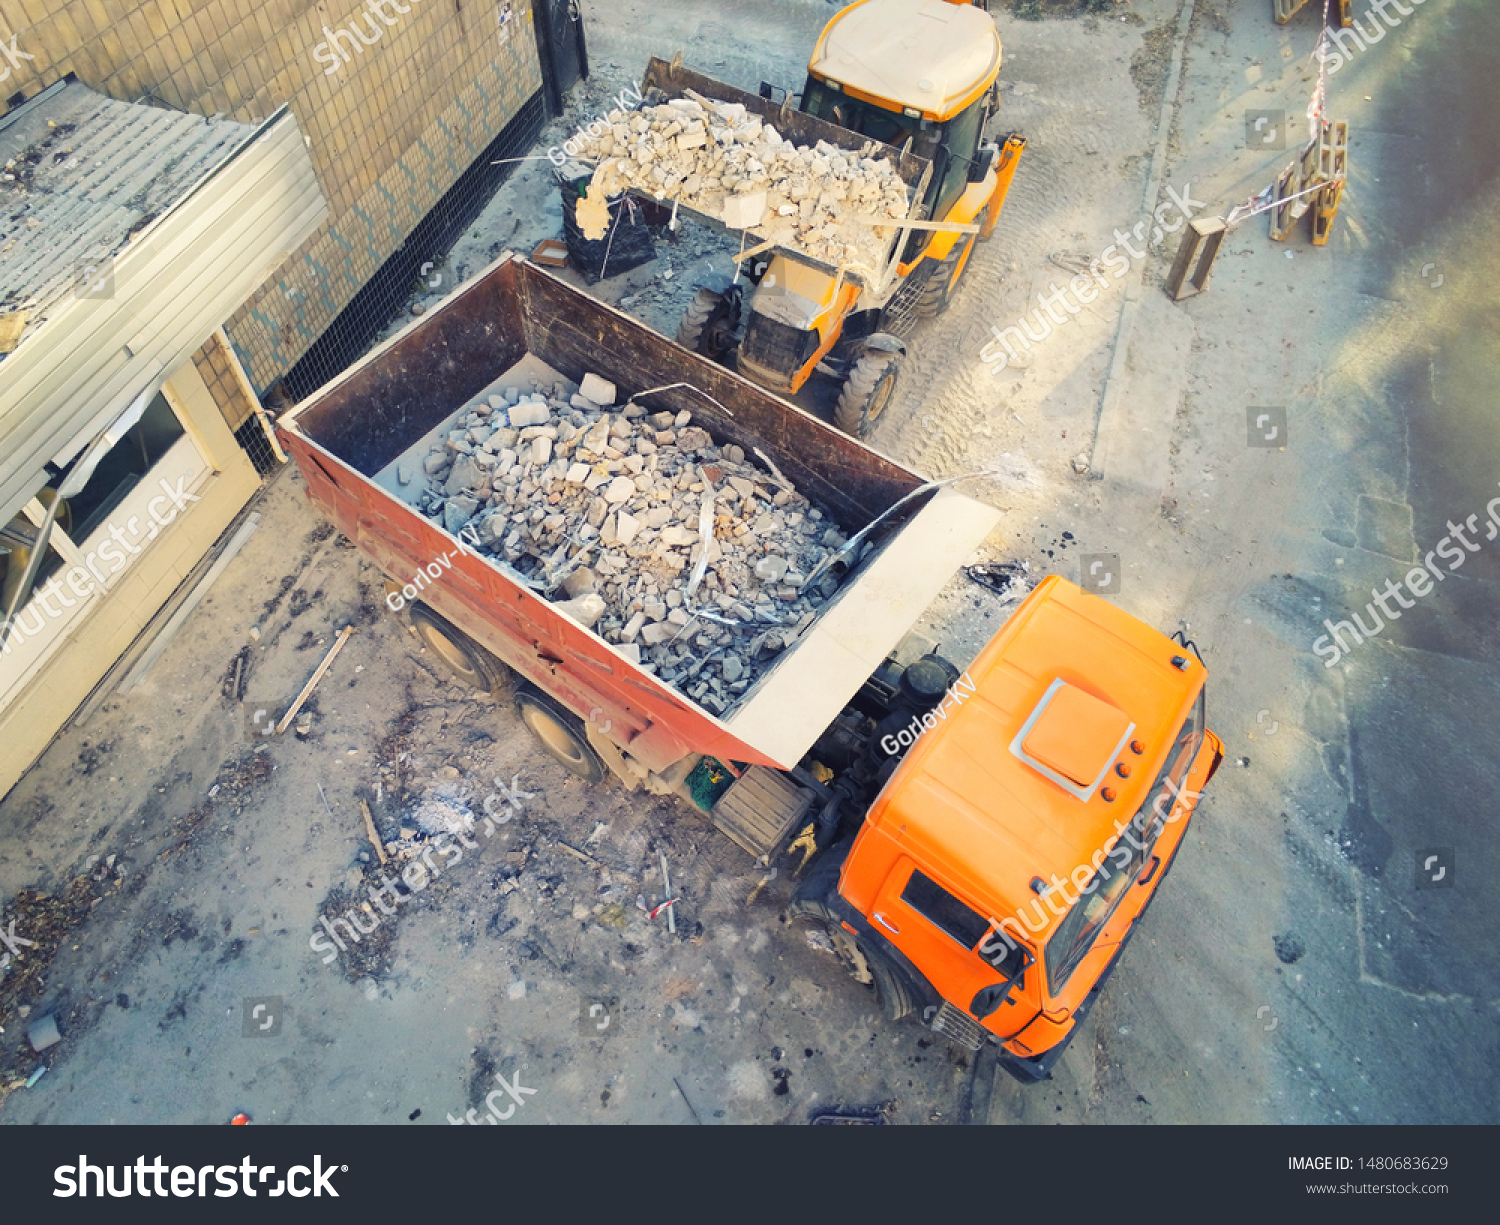 Bulldozer loader uploading waste and debris into dump truck at construction site. building dismantling and construction waste disposal service. Aerial drone industrial background #1480683629